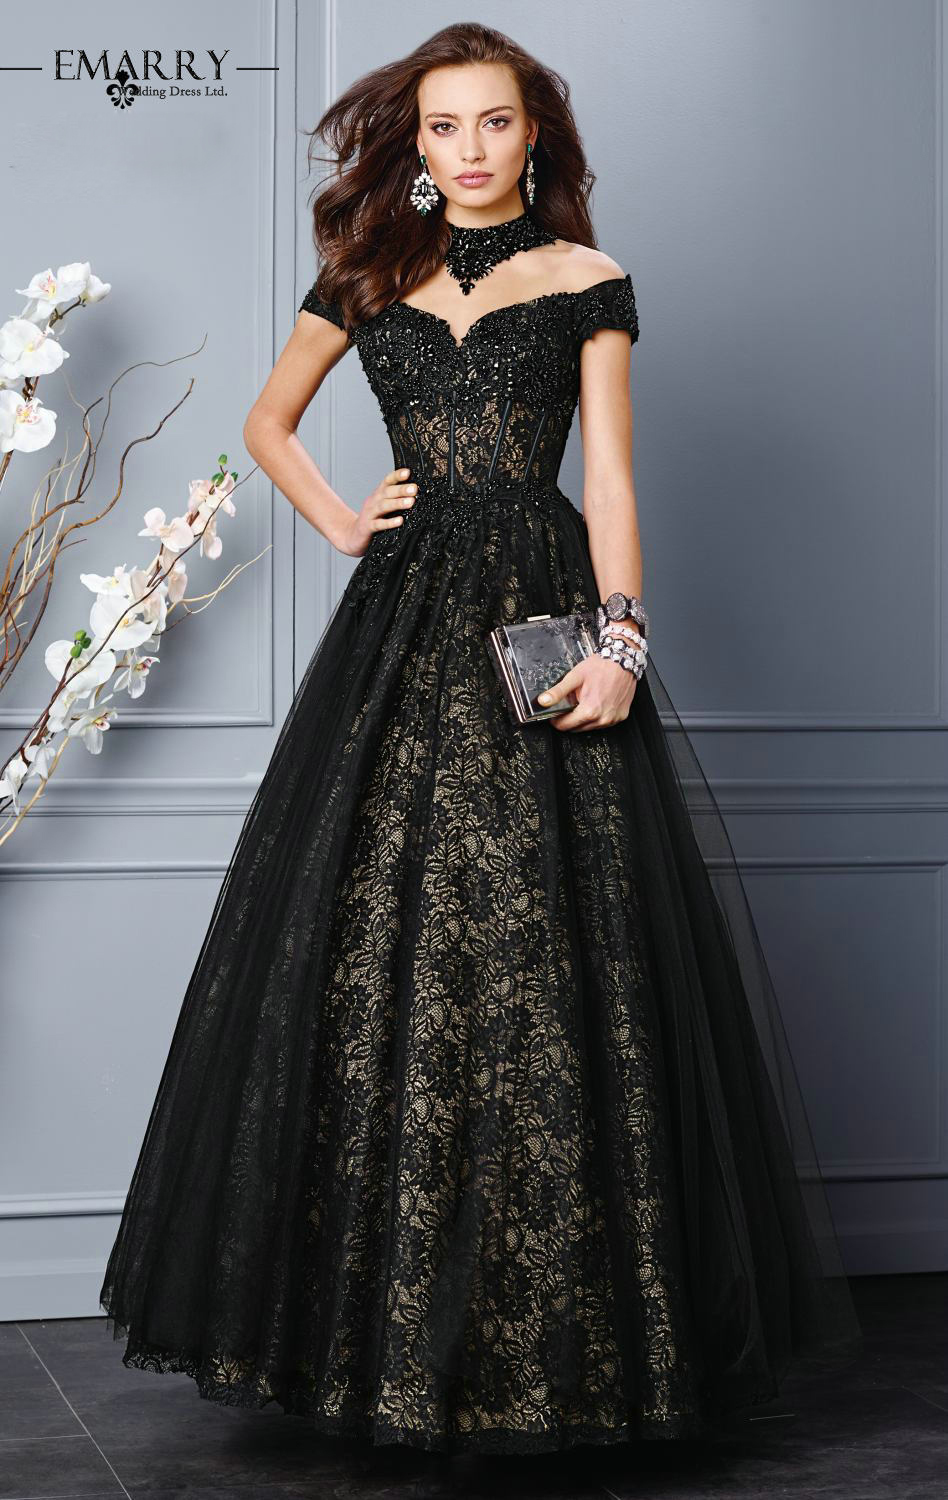 Images of Black Lace Evening Gown - Bellersfashion